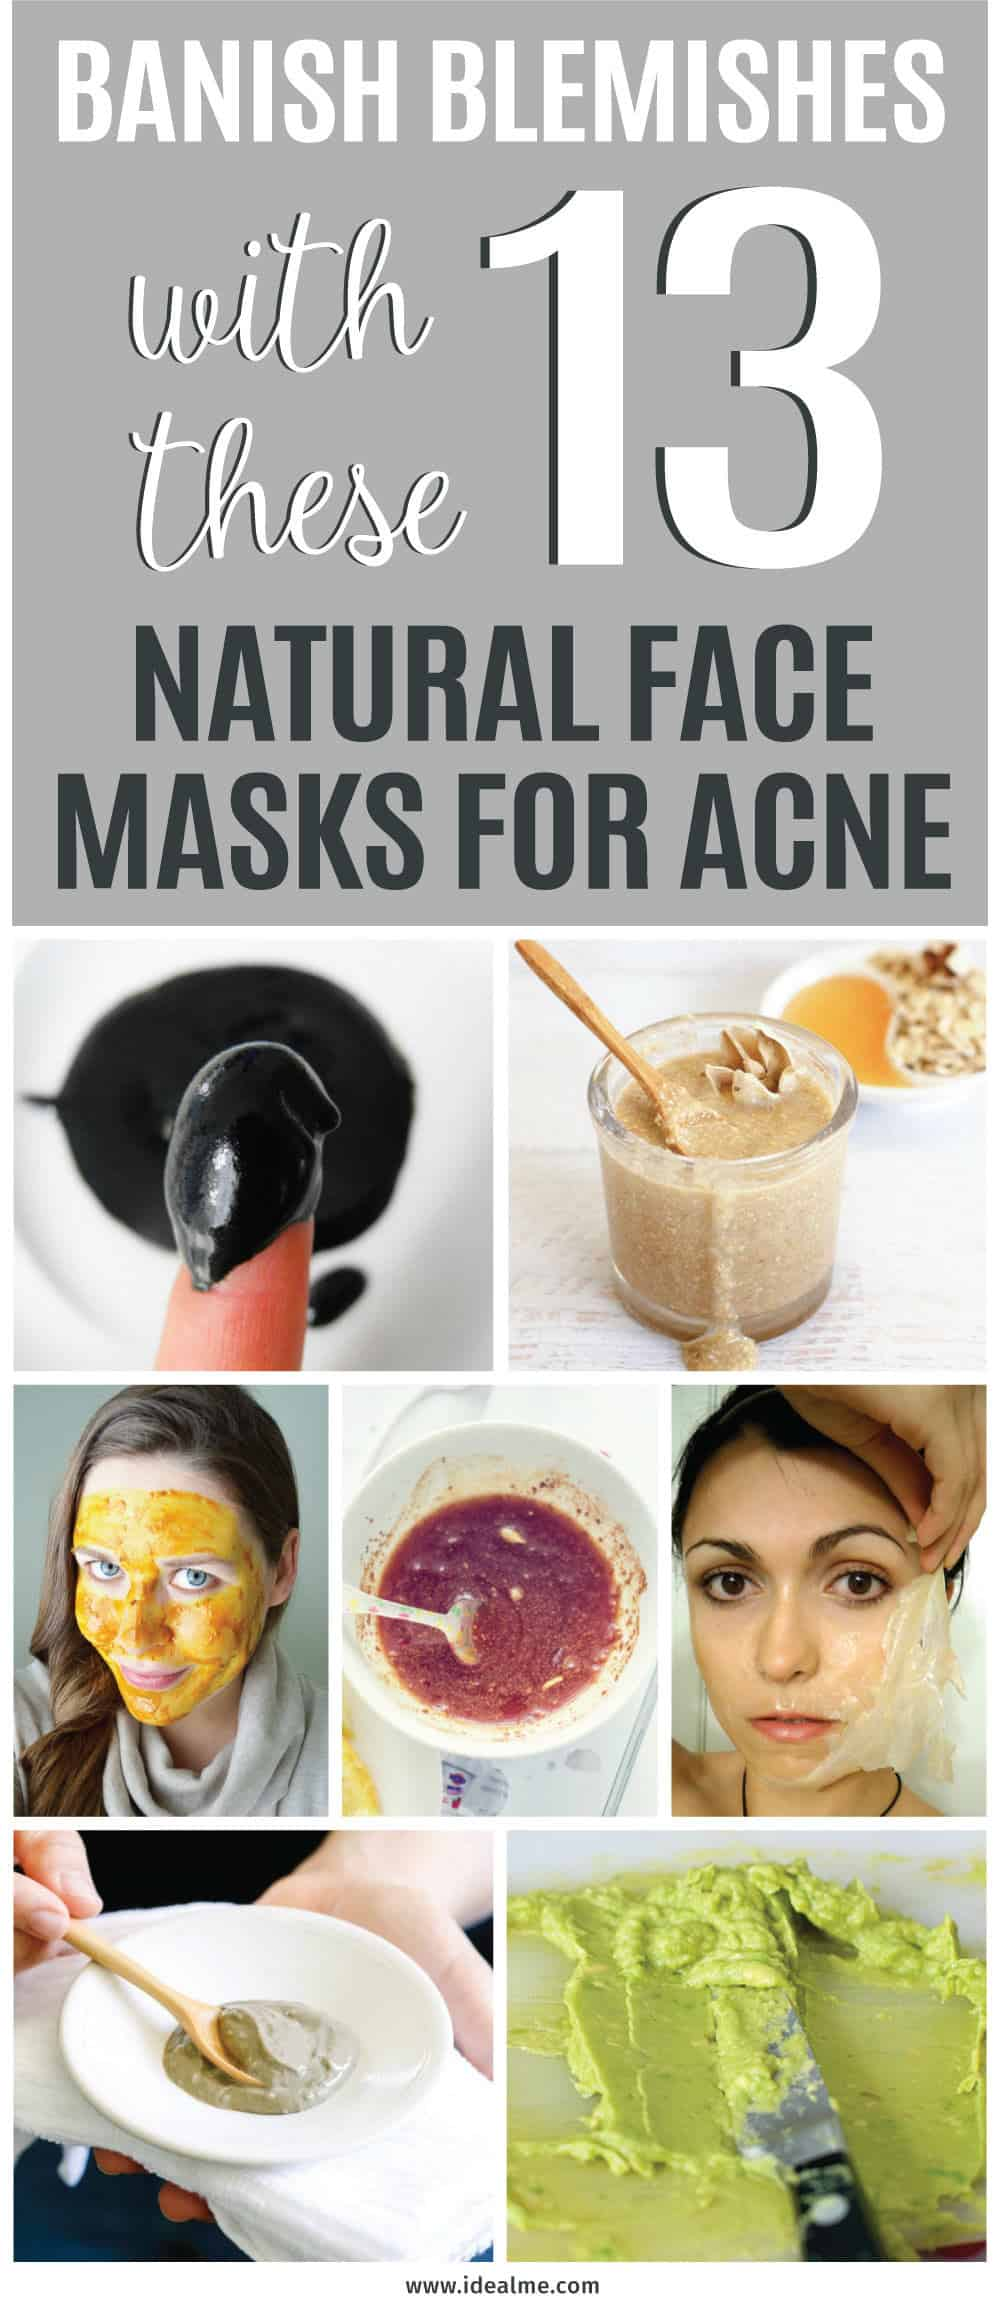 While facial masks might not be the ultimate acne cure, they can definitely improve the overall look and condition of your skin. If you're tired of looking in the mirror and seeing problem skin, banish blemishes with these 13 natural face masks for acne.